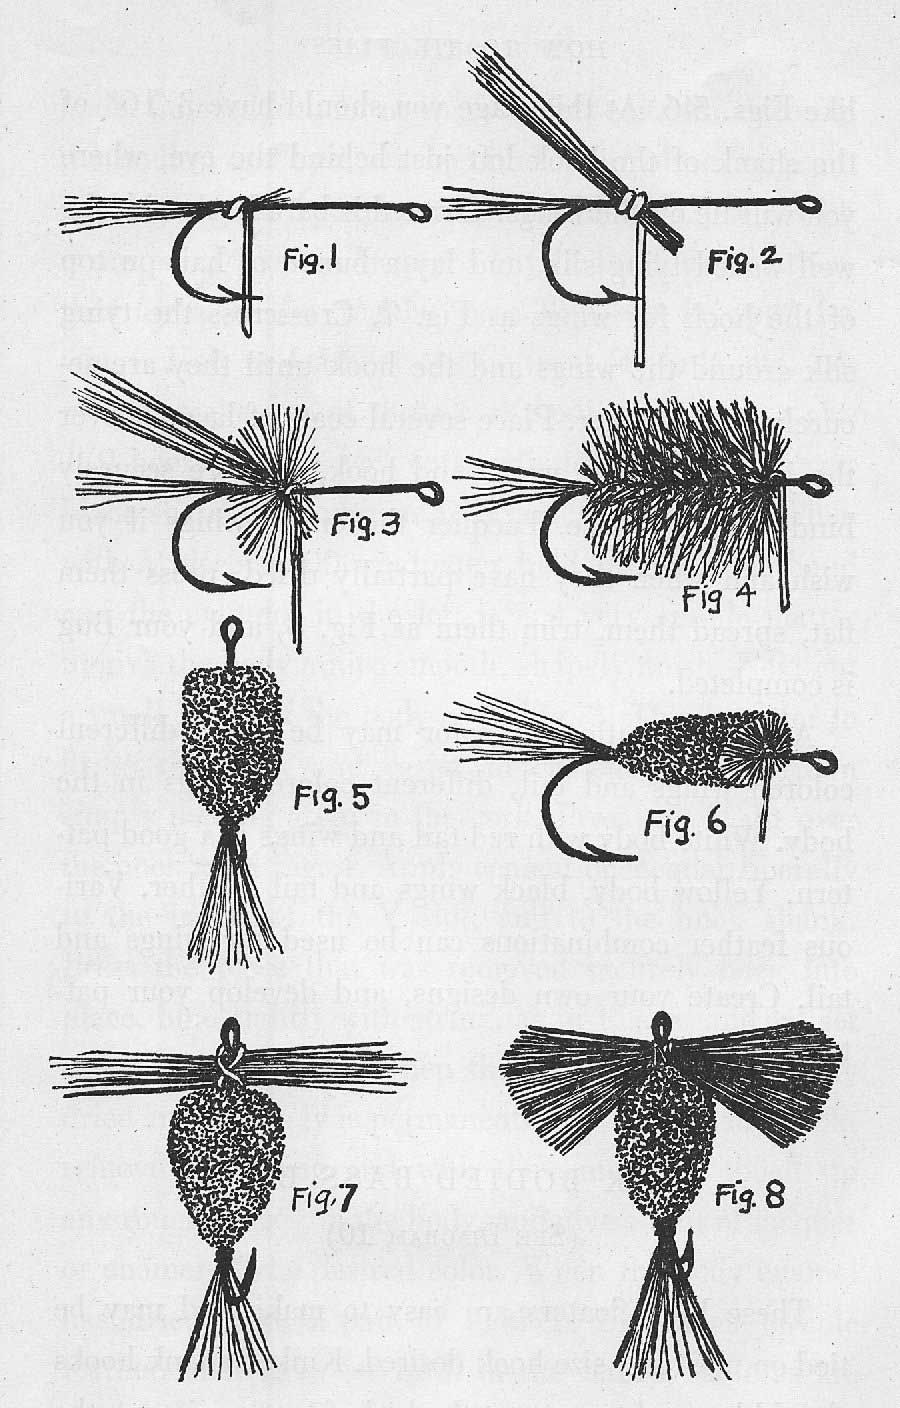 How To Tie Flies Fly Tying Fly Tying Patterns Fly Fishing